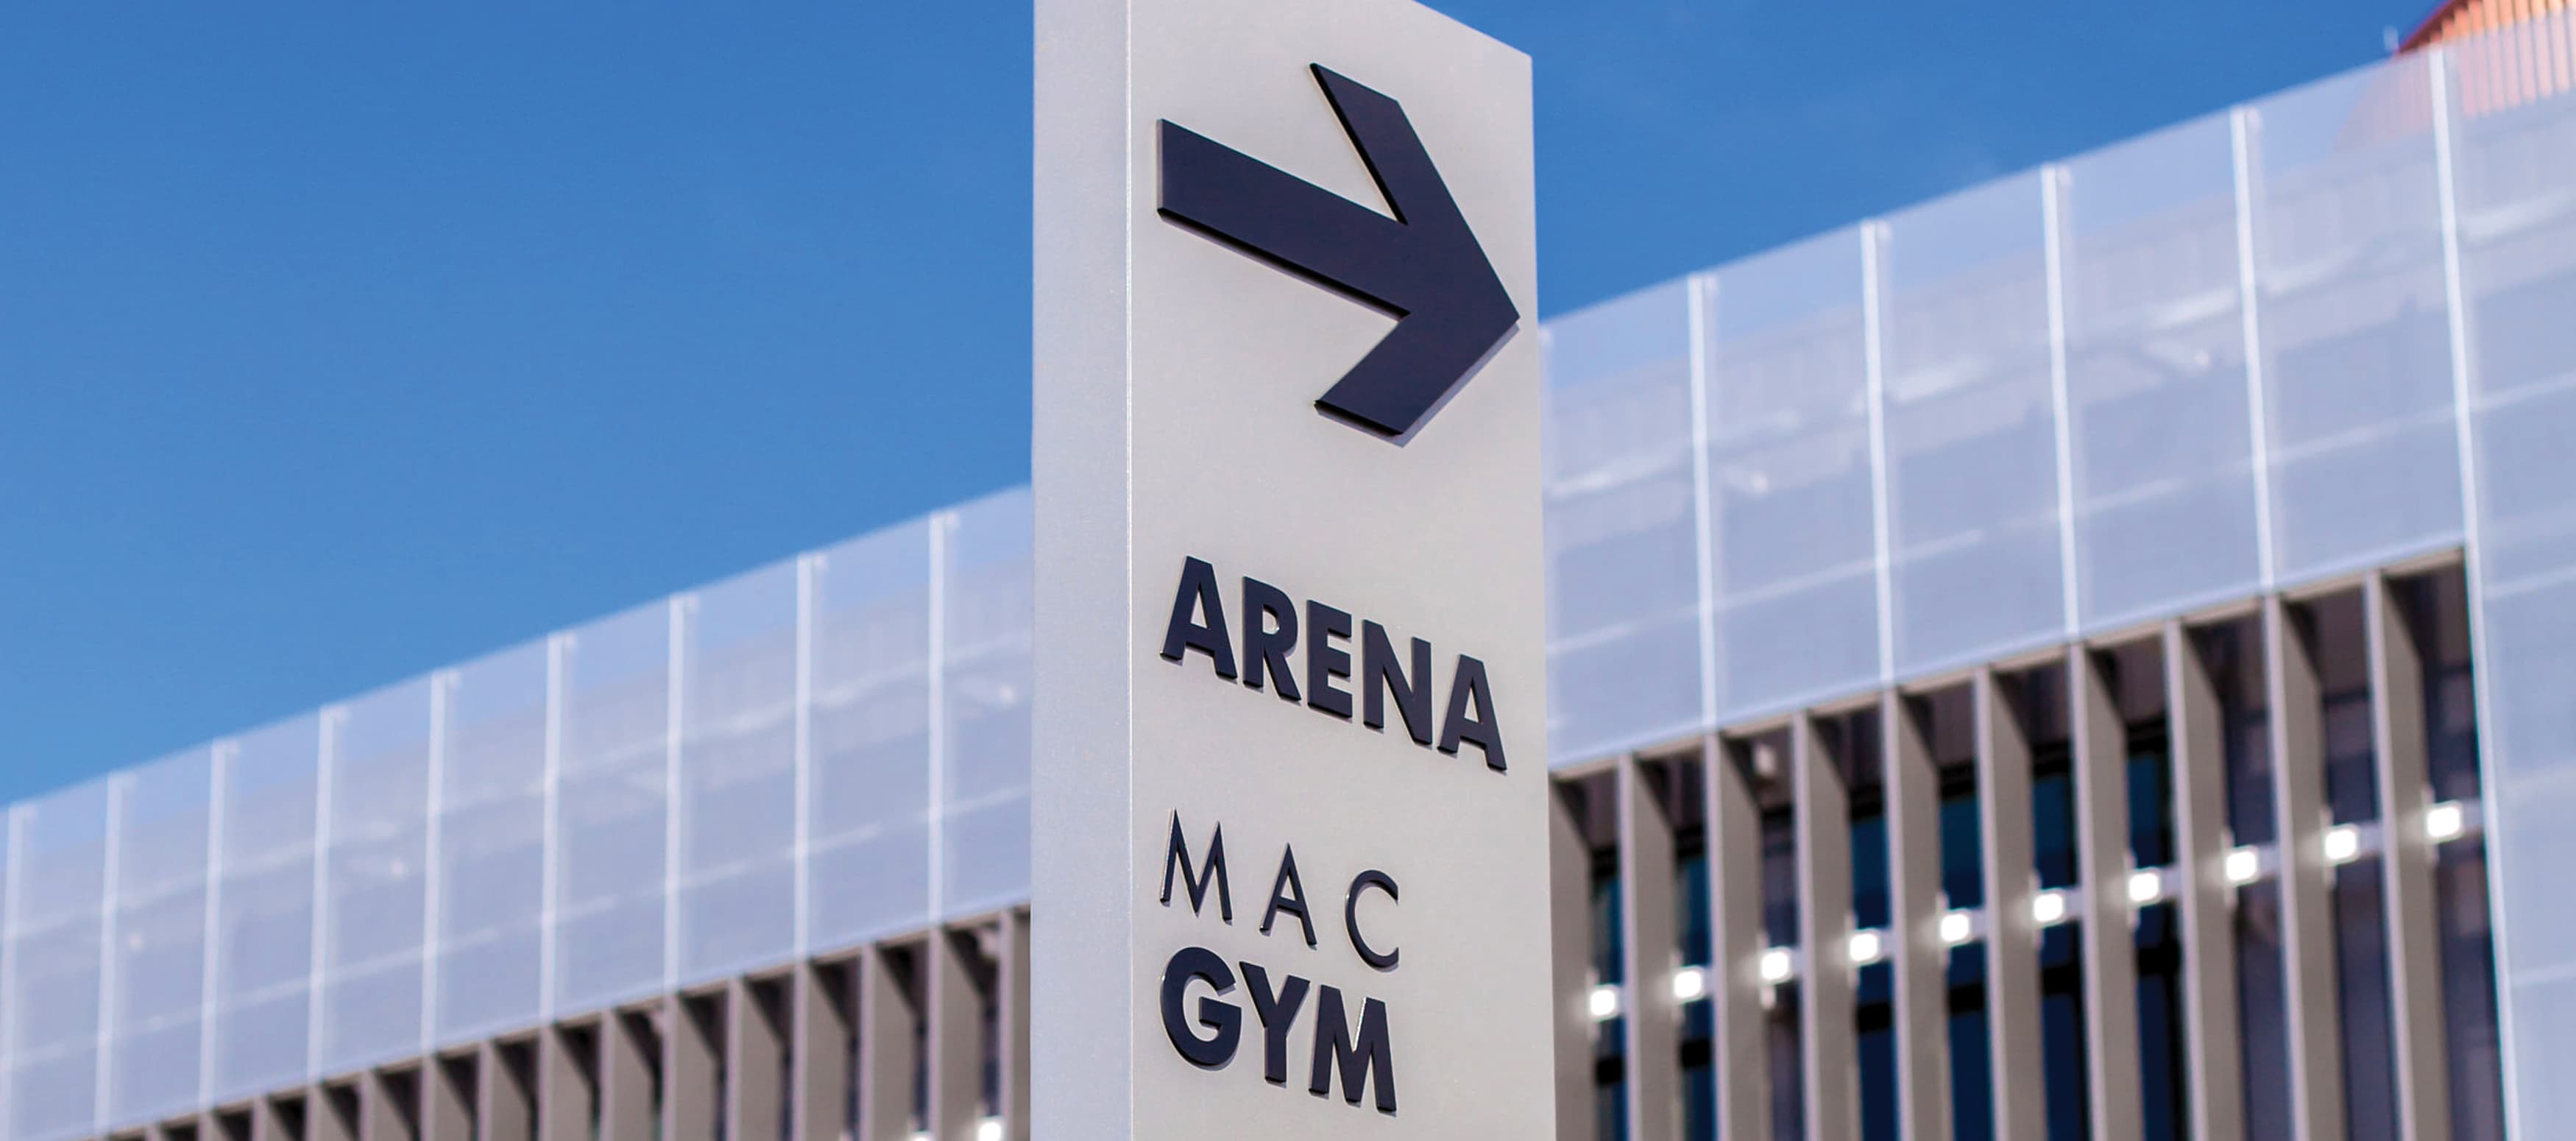 ARROW ON SIGN POINTING TO NEARBY ARENA IN BACKGROUND